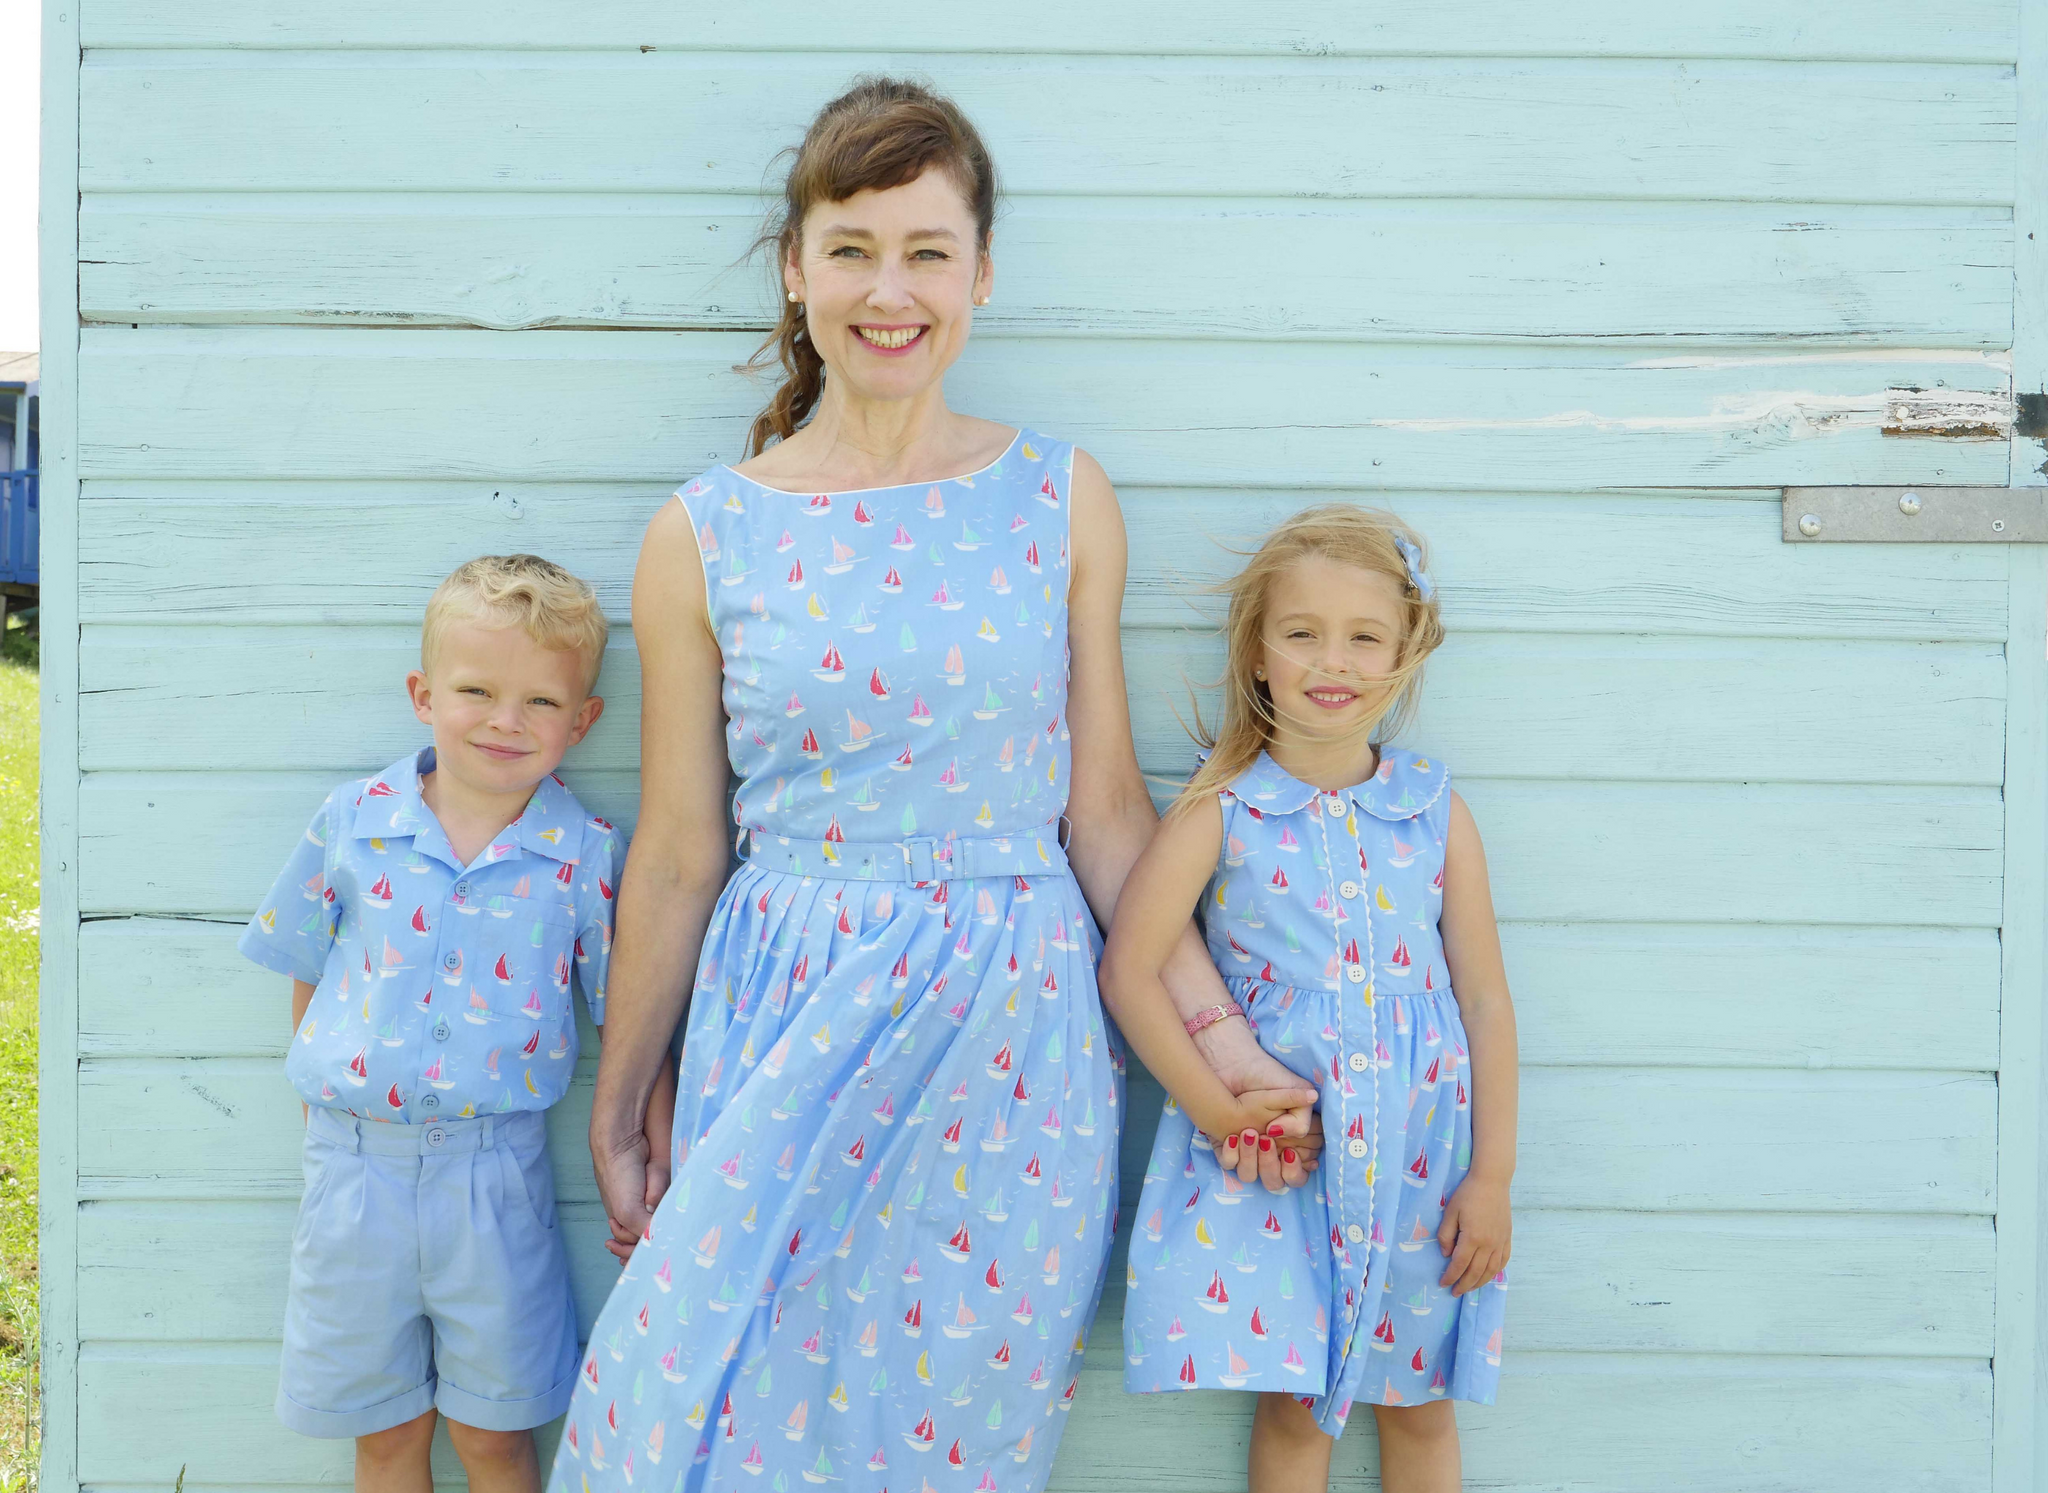 Rachel Riley wearing matching outfits with two children